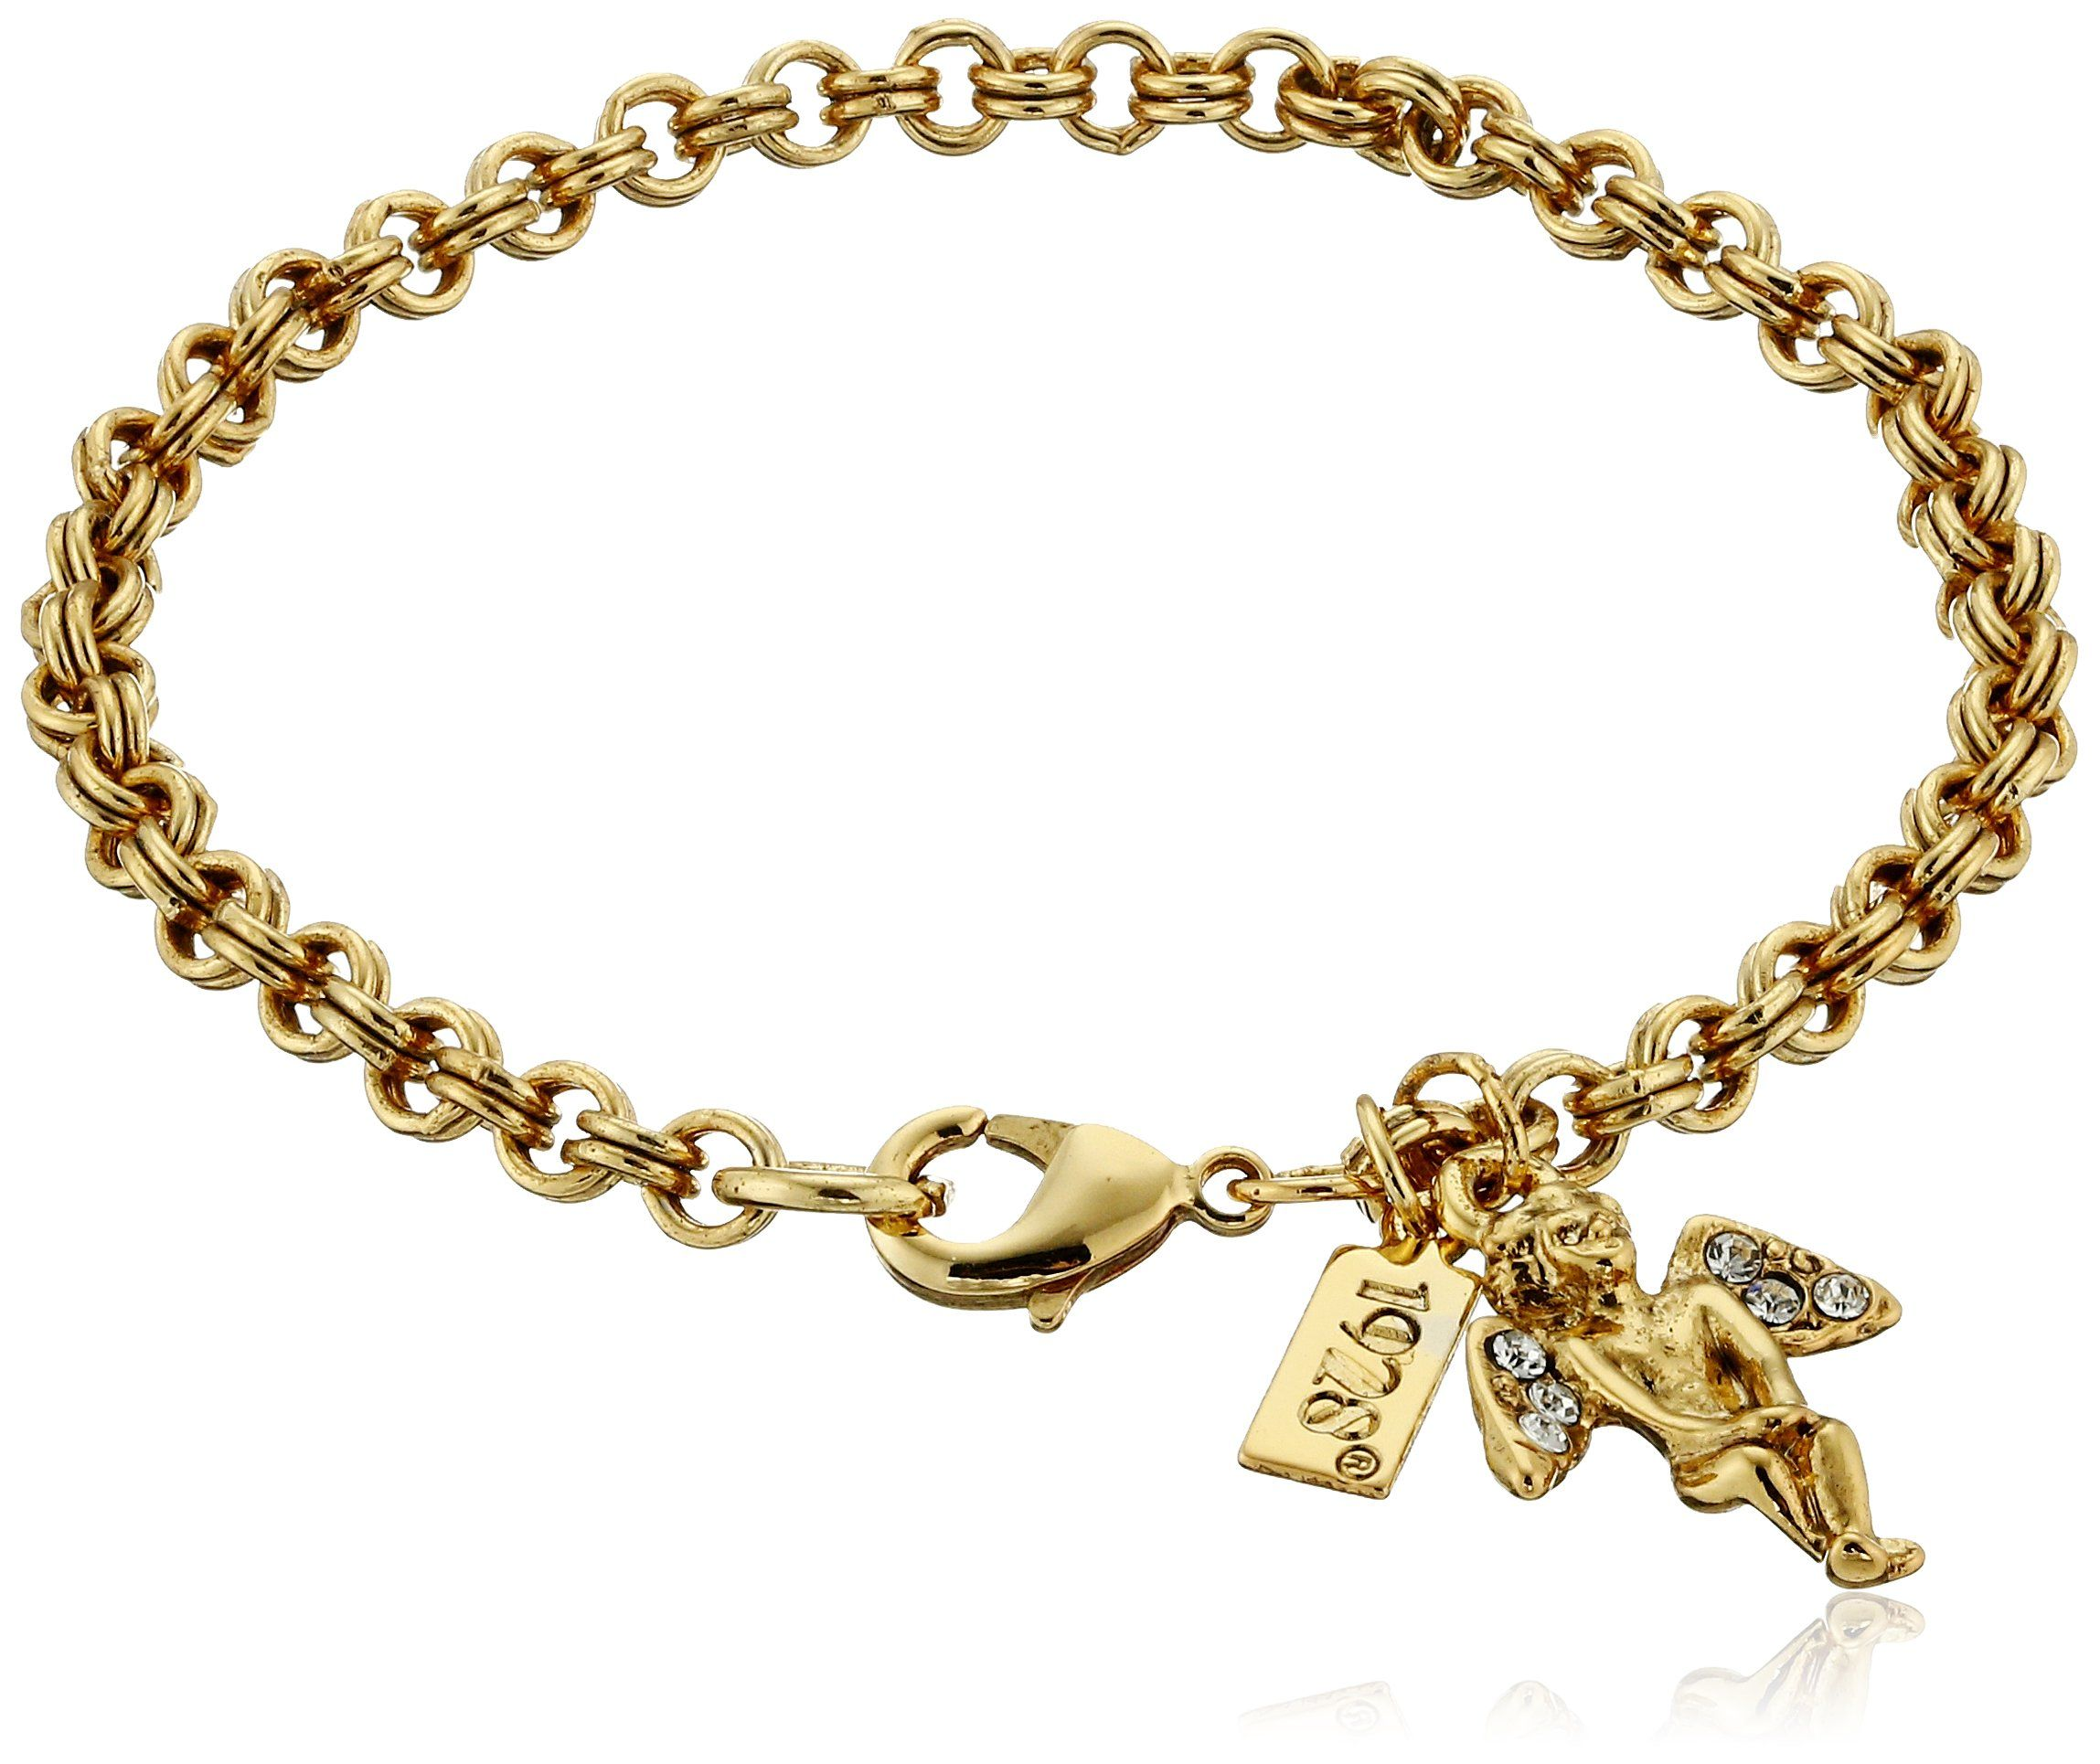 Symbols of faith inspirations 14k gold dipped crystal angel symbols of faith inspirations 14k gold dipped crystal angel chain link charm bracelet 7 comes in a gift box this symbols of faith 14k gold dipped link biocorpaavc Images